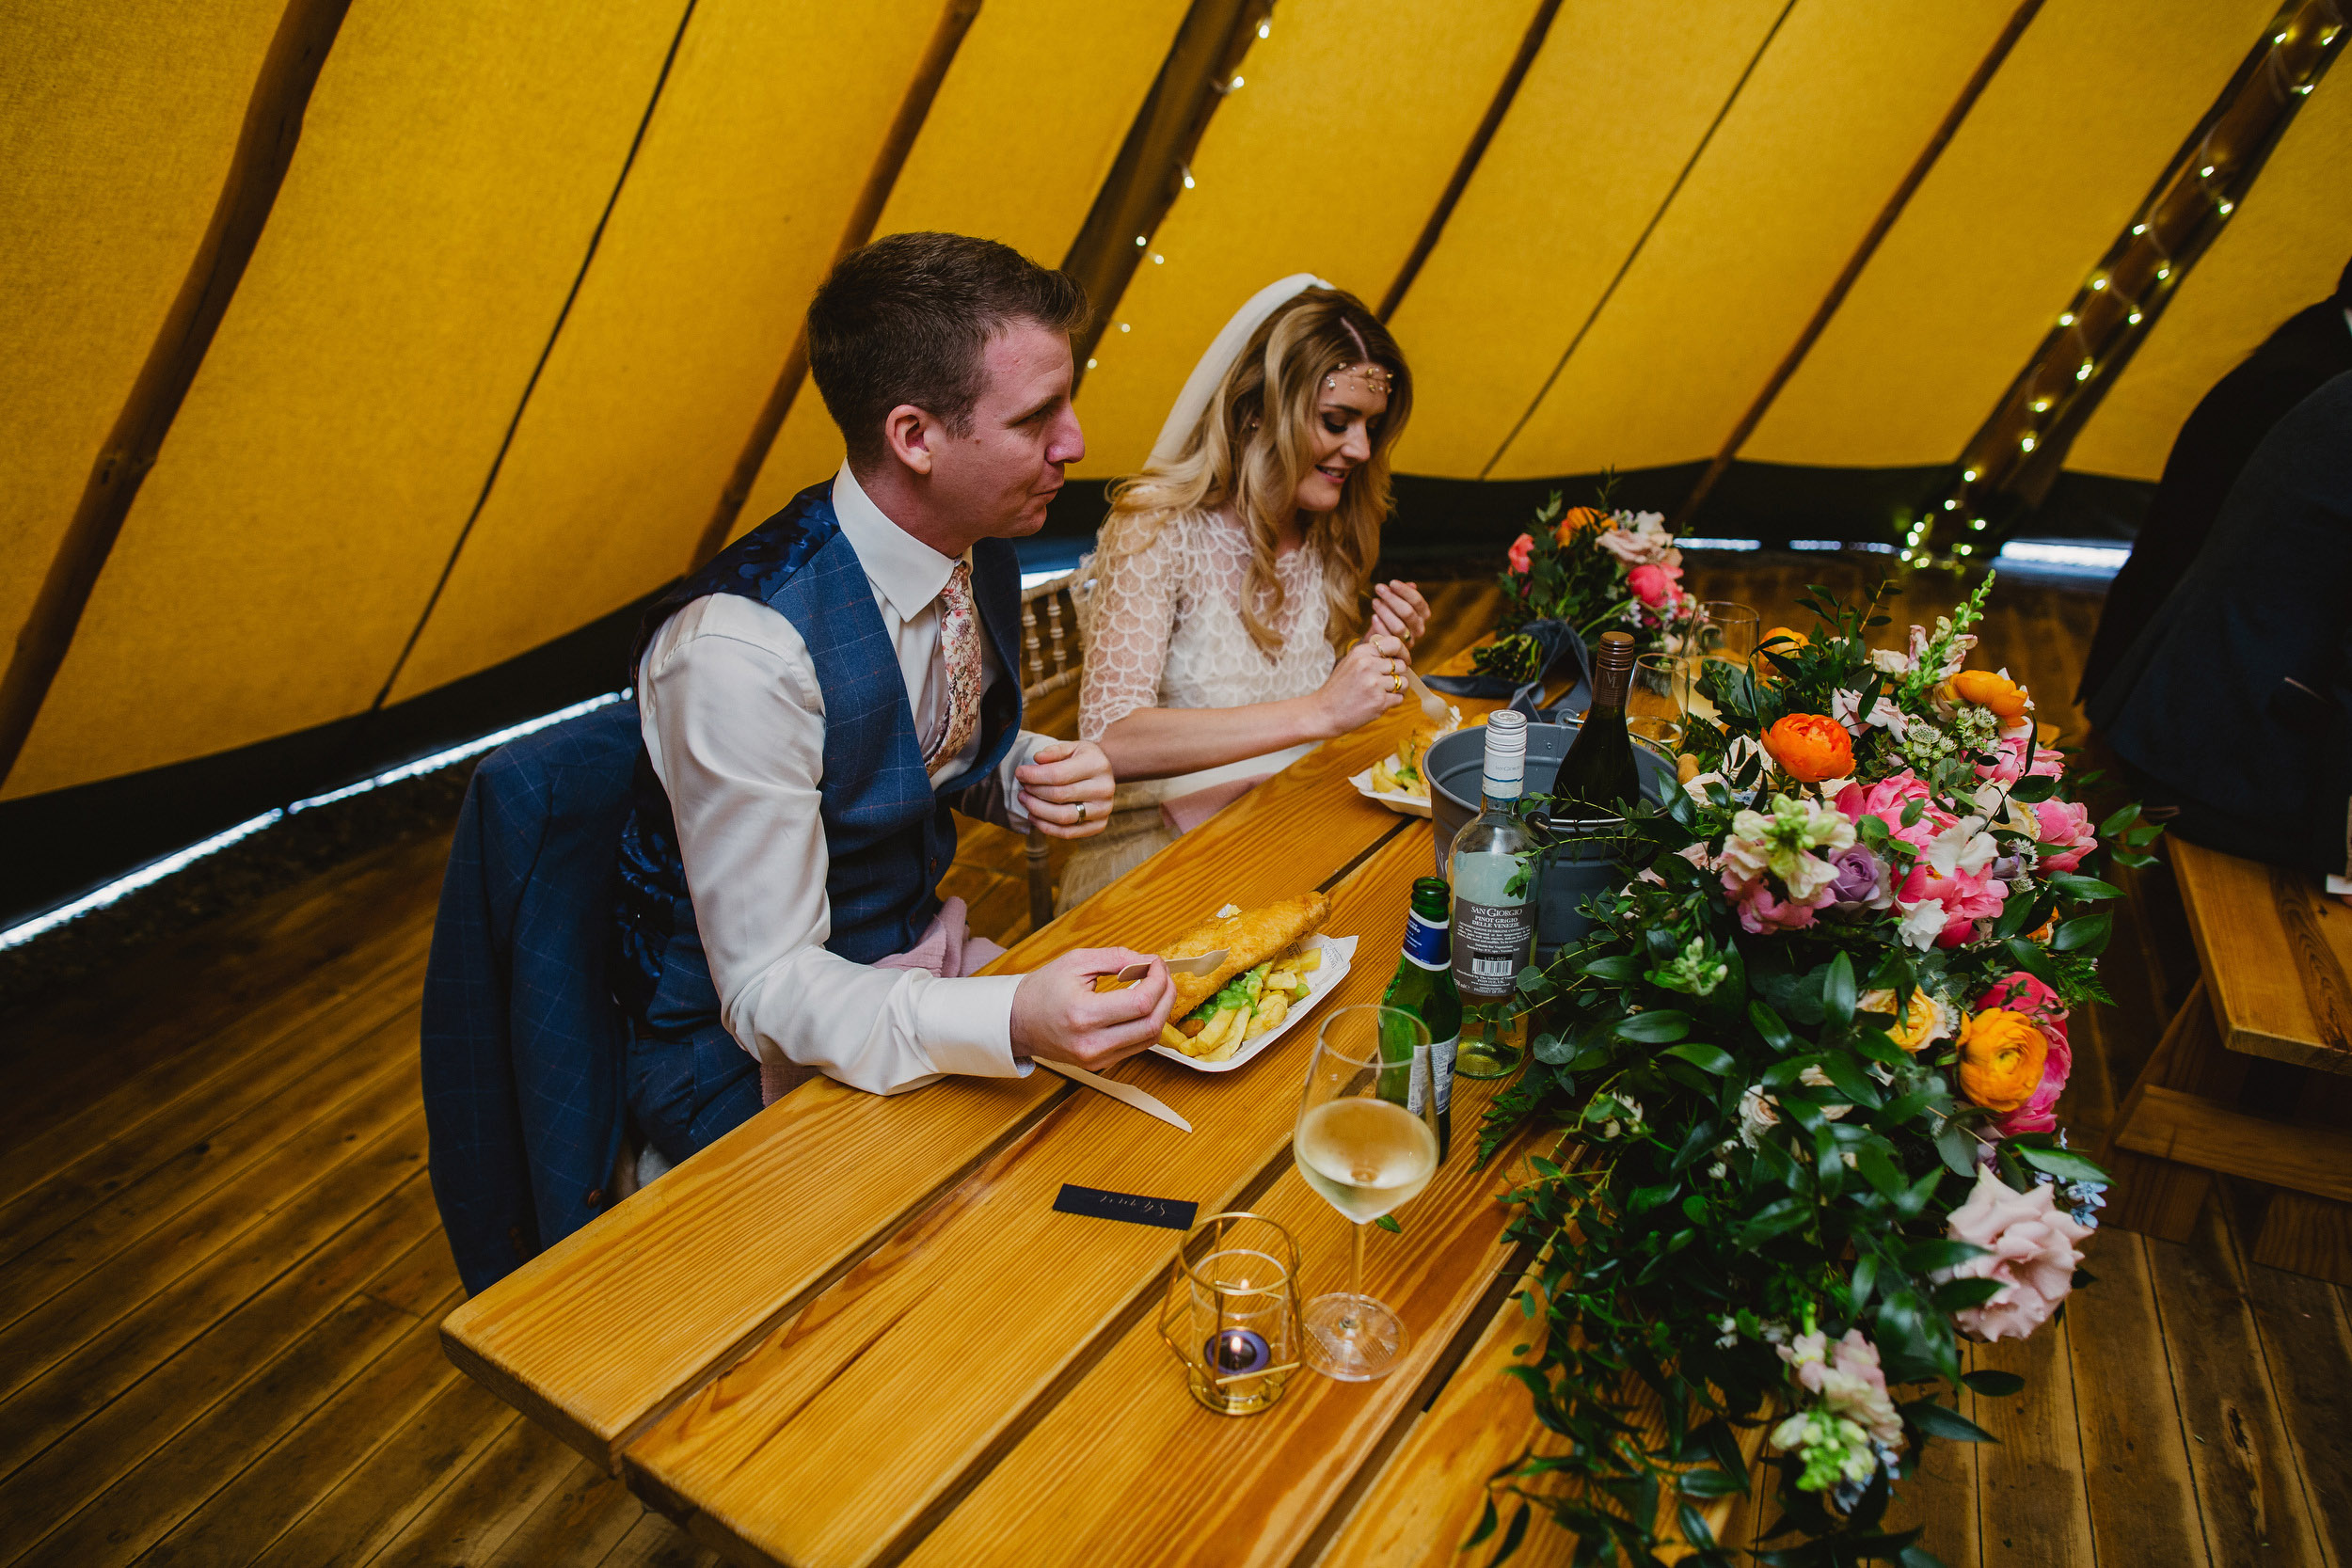 Gemma-Bohemian-Outdoor-Tipi-Wedding-Laid-Back-Relaxed-Family-Wedding-Kate-Beaumont-Astilbe-by-S6-Photography-Sheffield-32.jpg